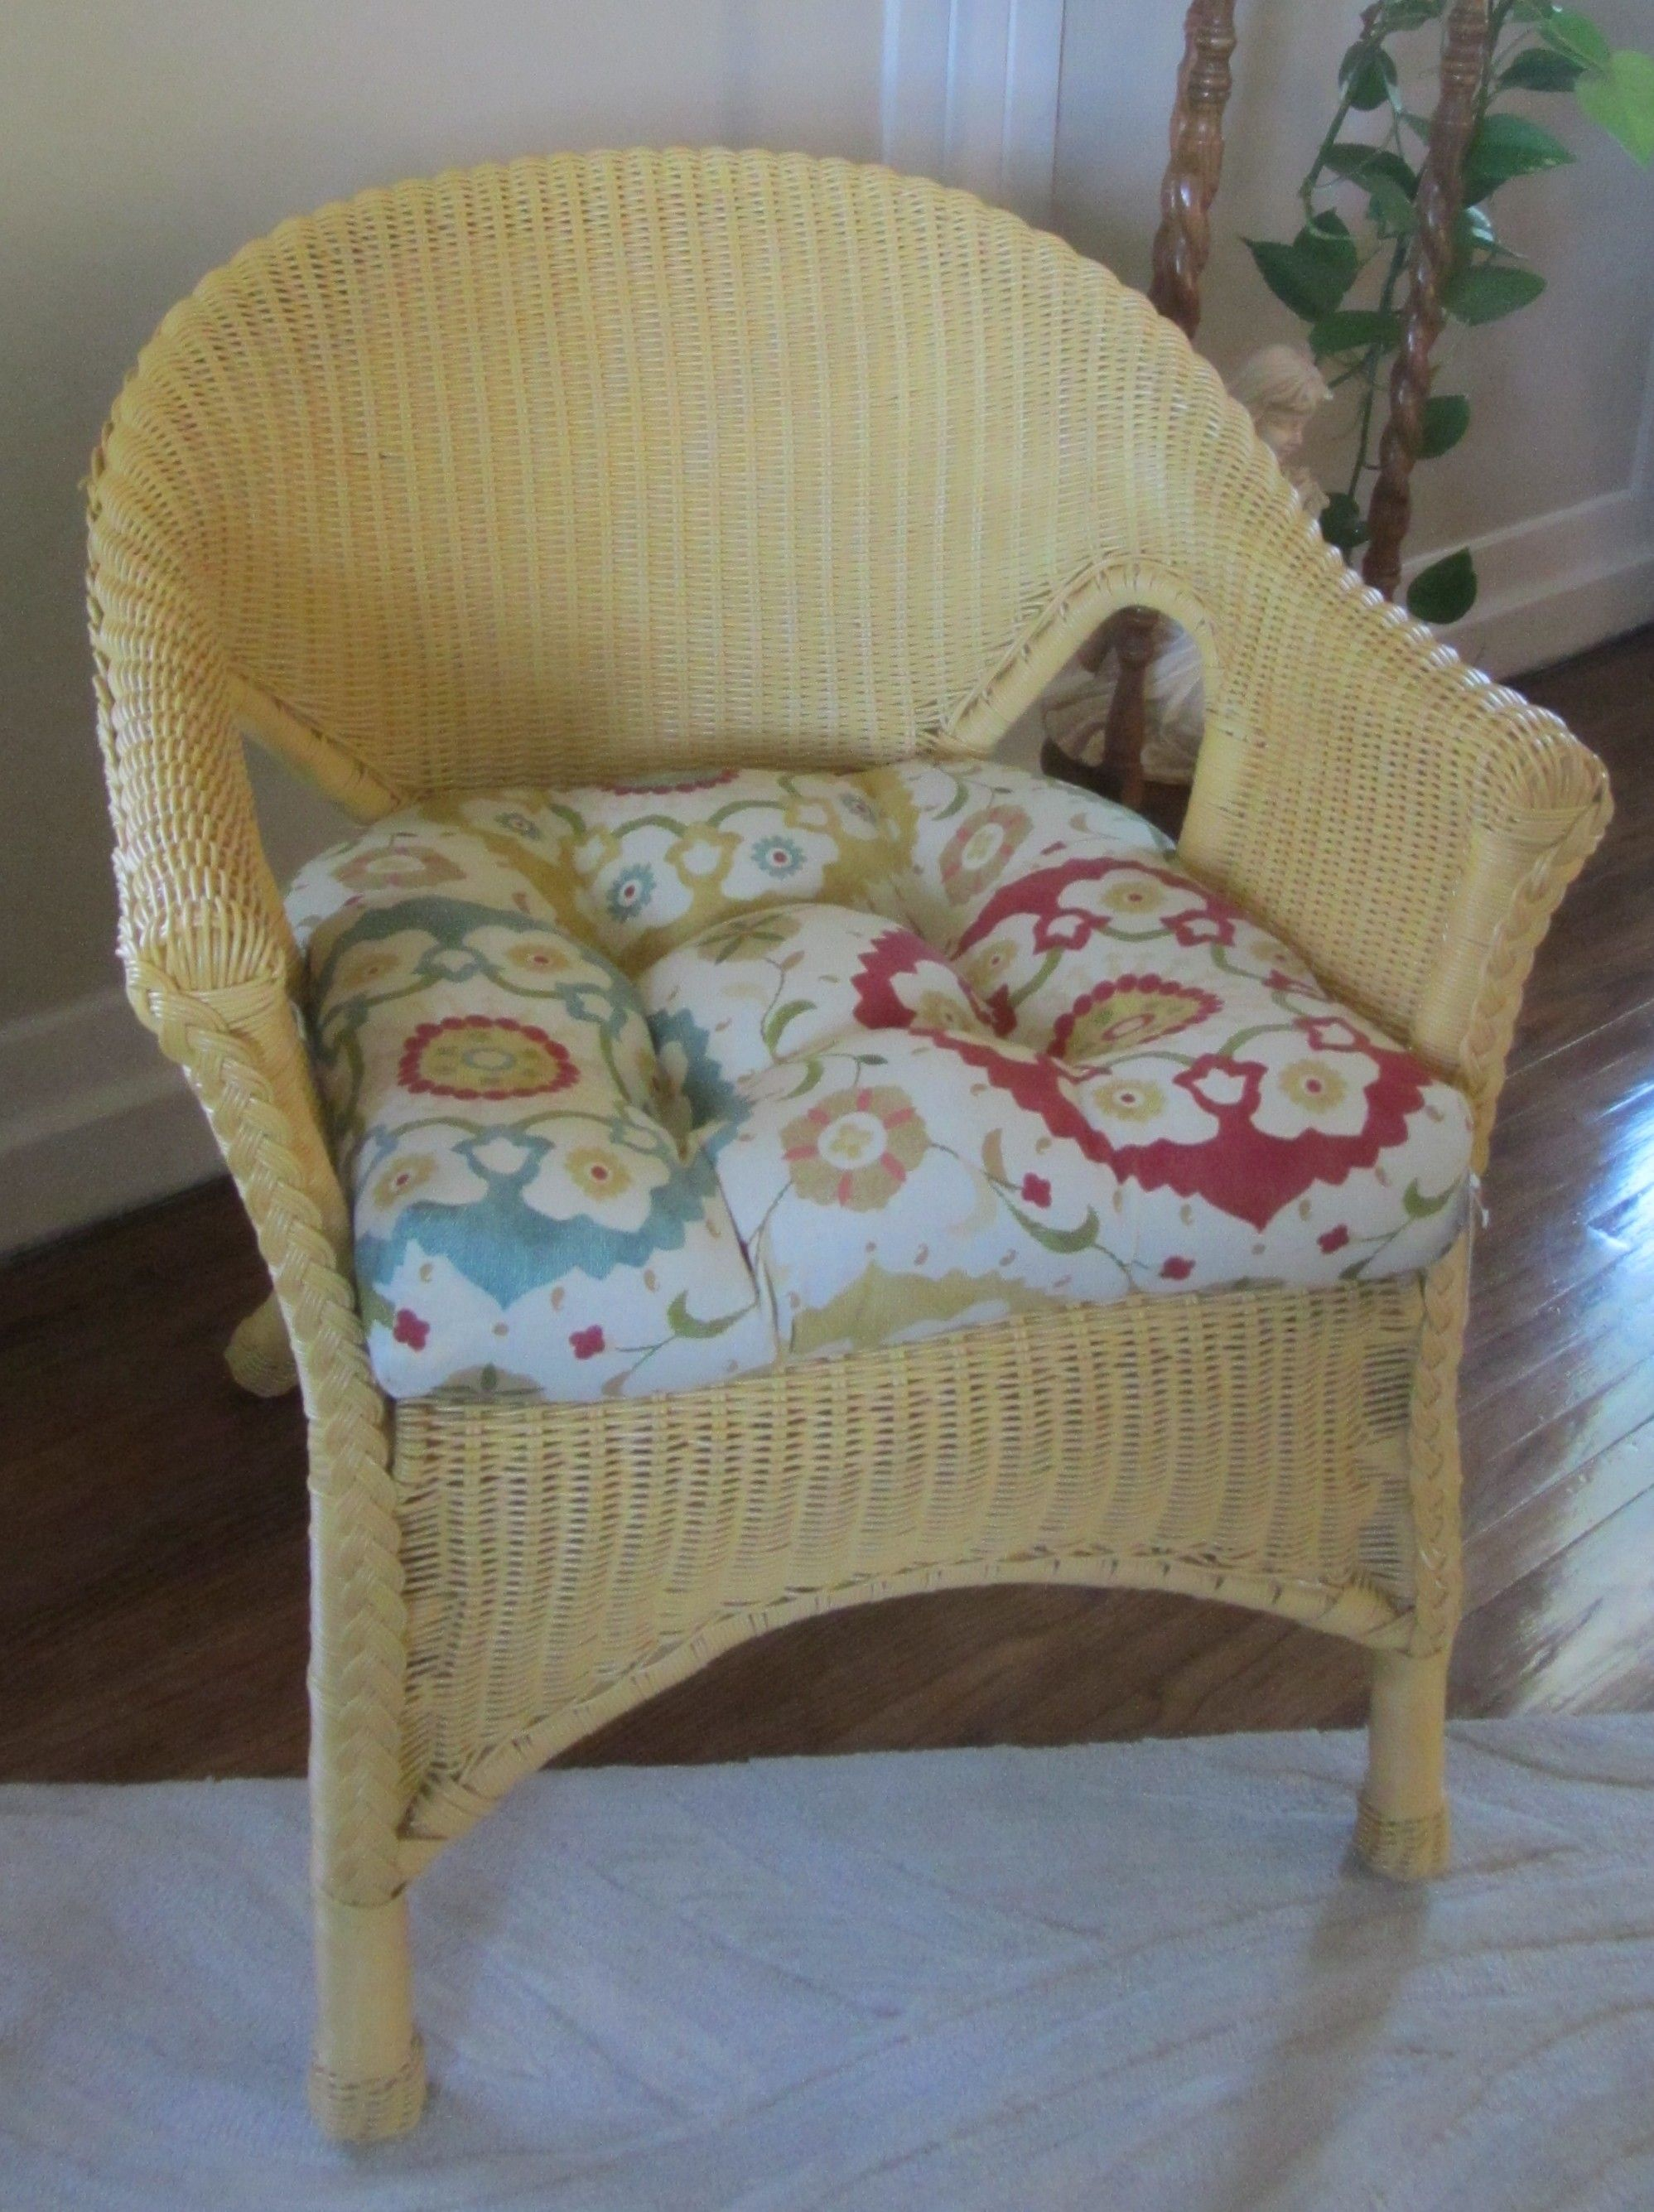 2 Plastic foux wicker chair, 1 4 can of spay paint, 45